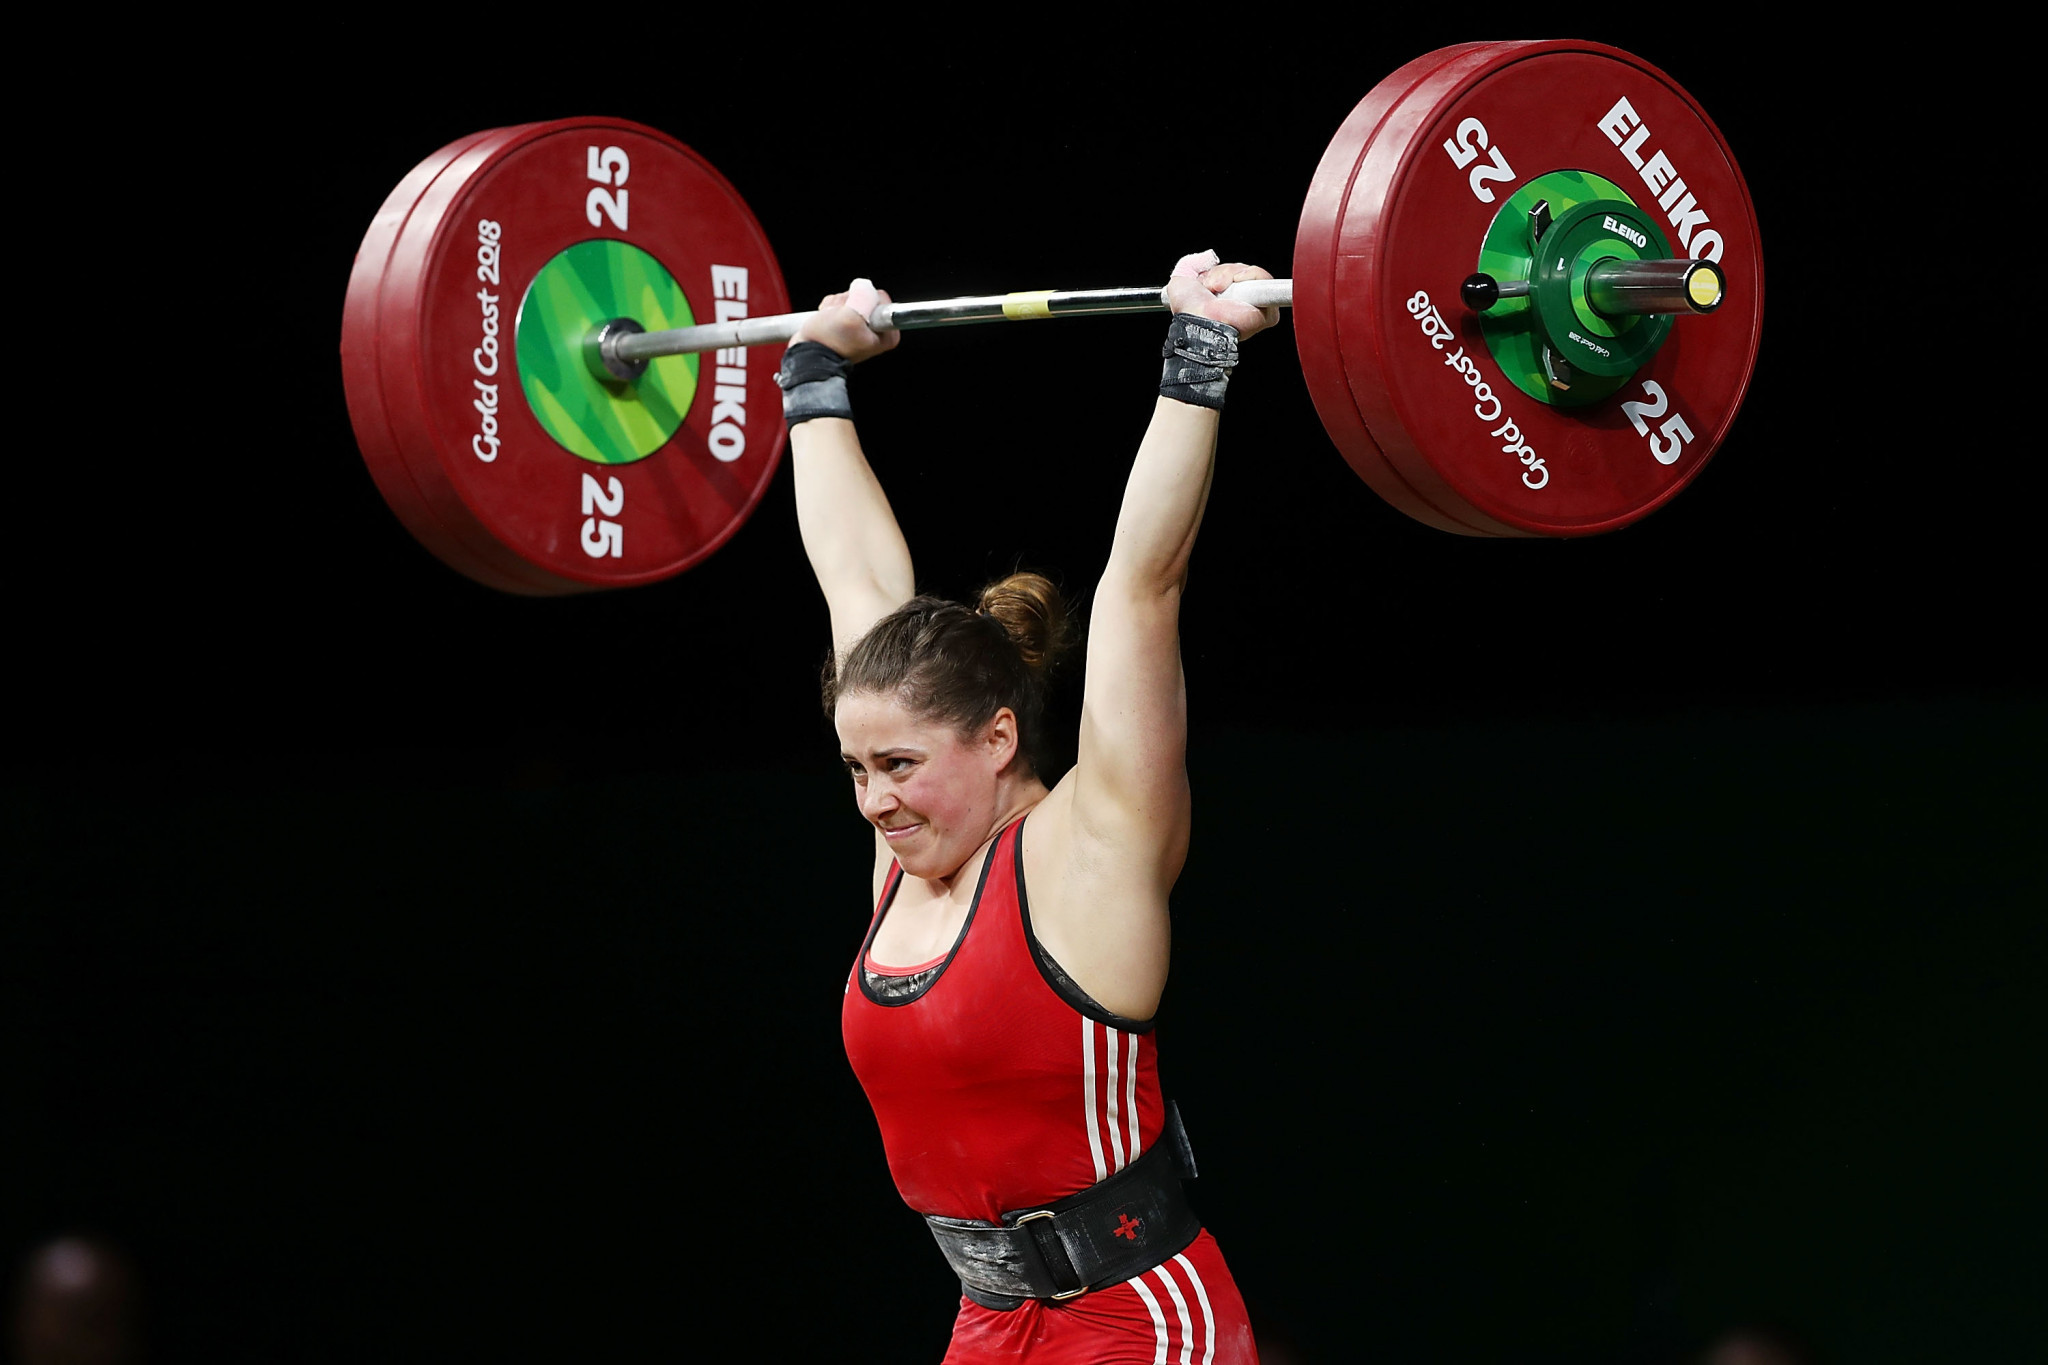 """Maude Charron said """"everyone in weightlifting is heartbroken"""" over the decision to postpone Tokyo 2020 ©Getty Images"""